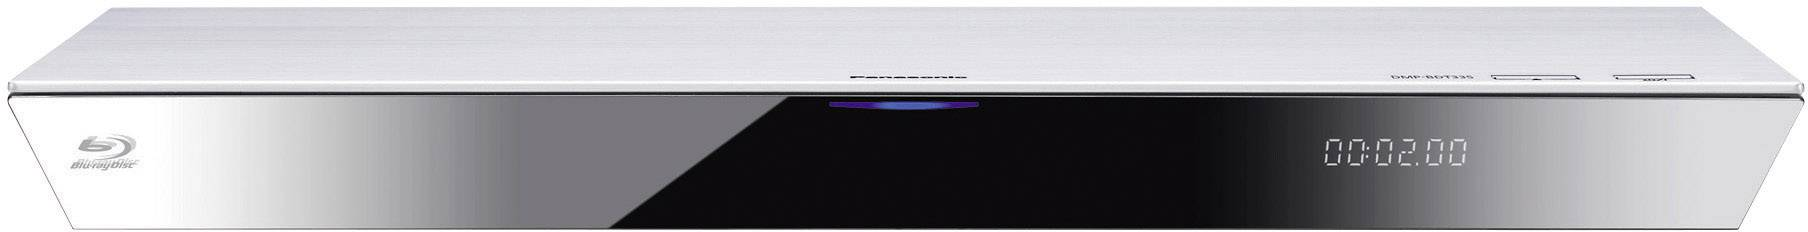 Panasonic DMP-BDT335EG Blu-ray Player Drivers for PC